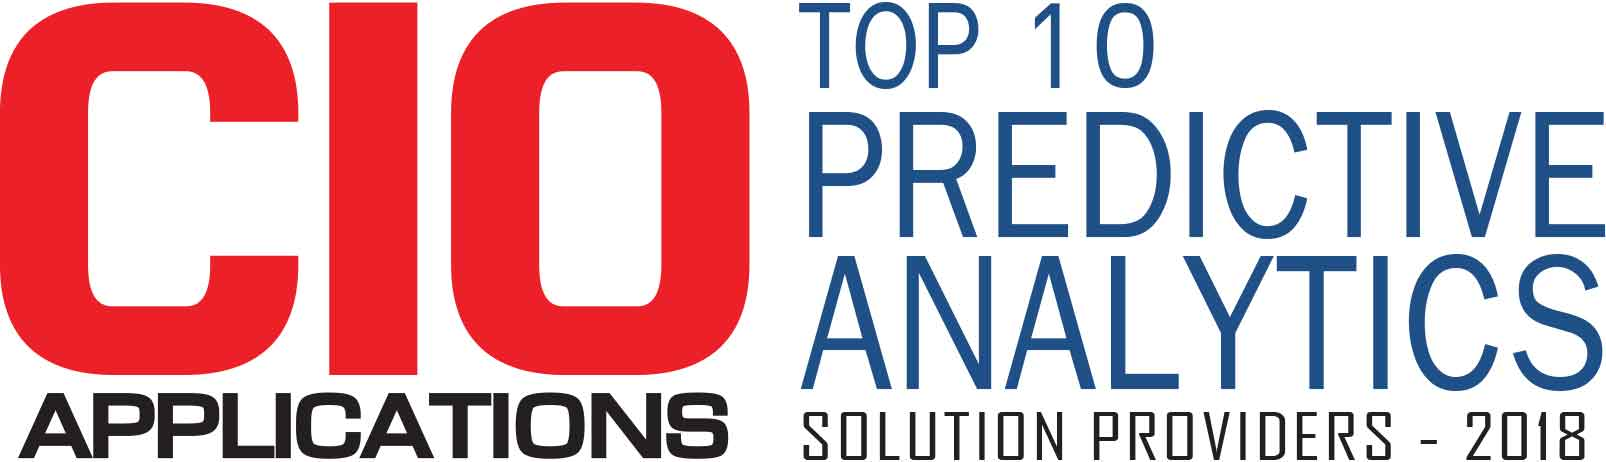 Top 10 Companies Providing Predictive Analytics Solution  - 2018